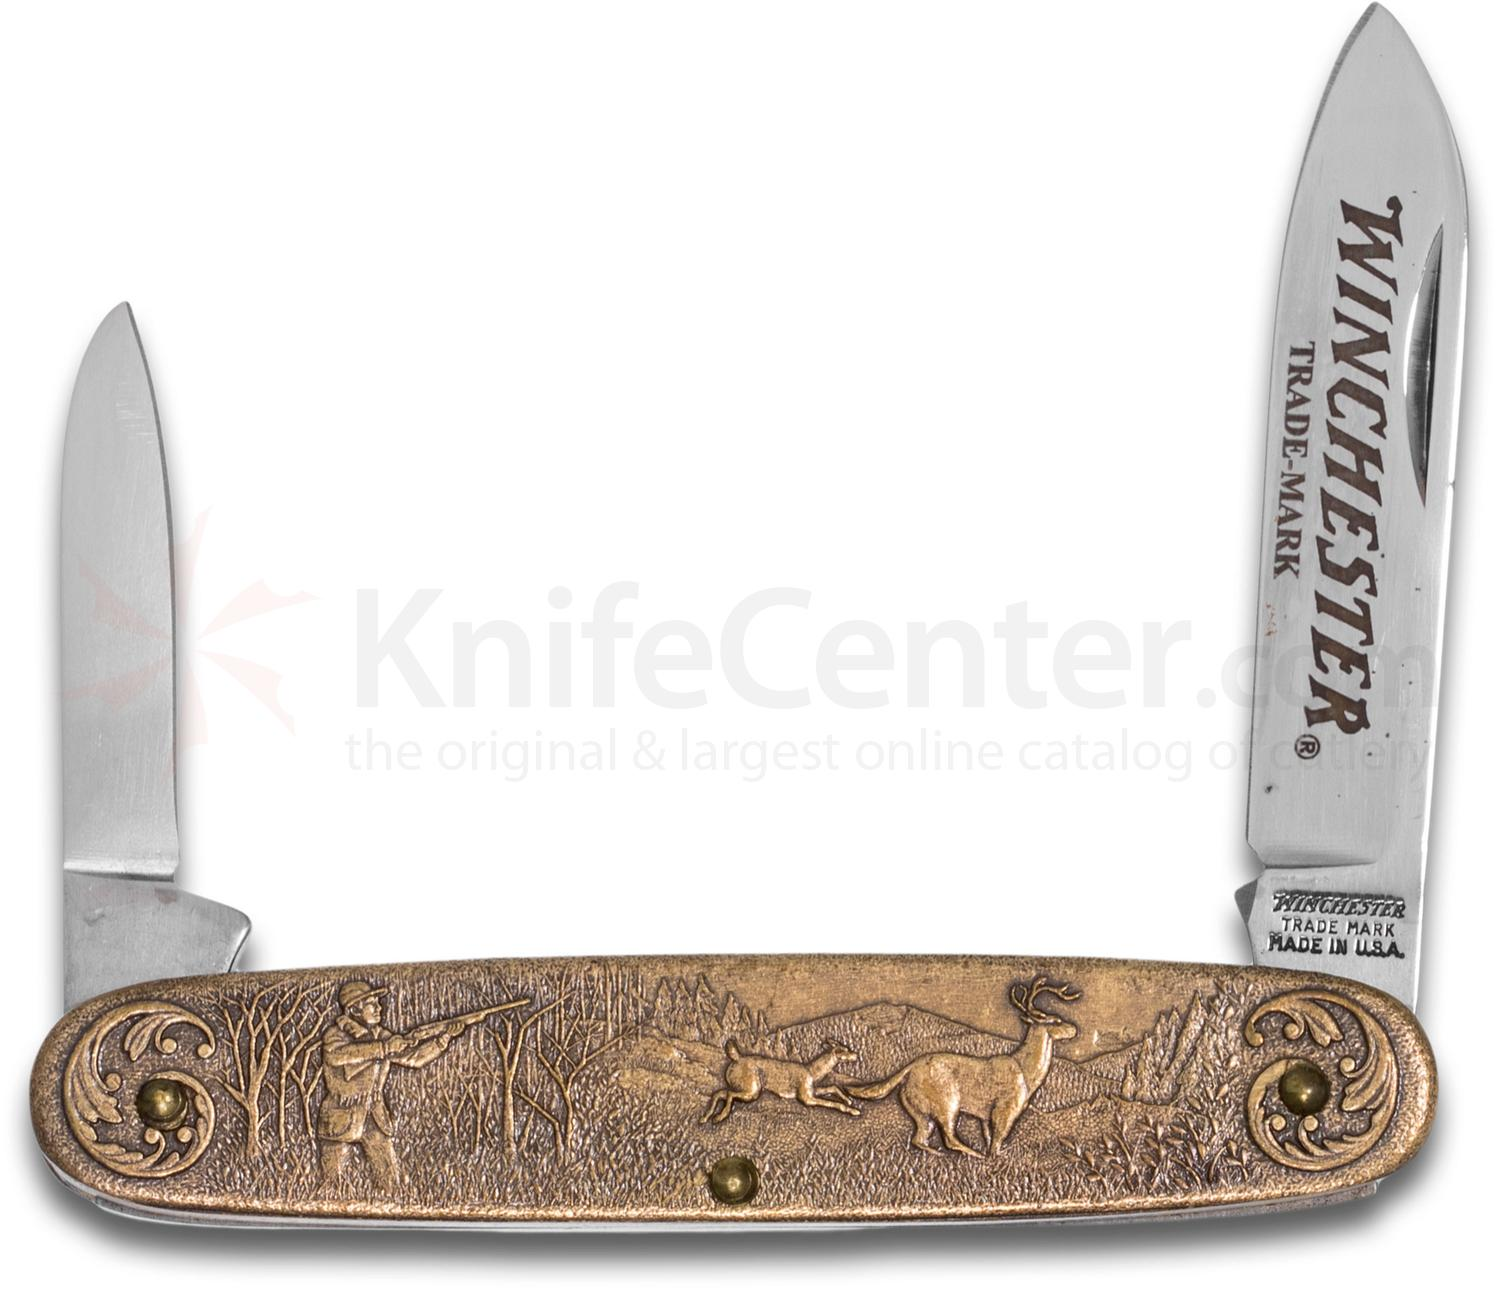 Winchester Model 94 Commemorative Pen Knife 3.5 inch Closed, Relief Bronze Handles